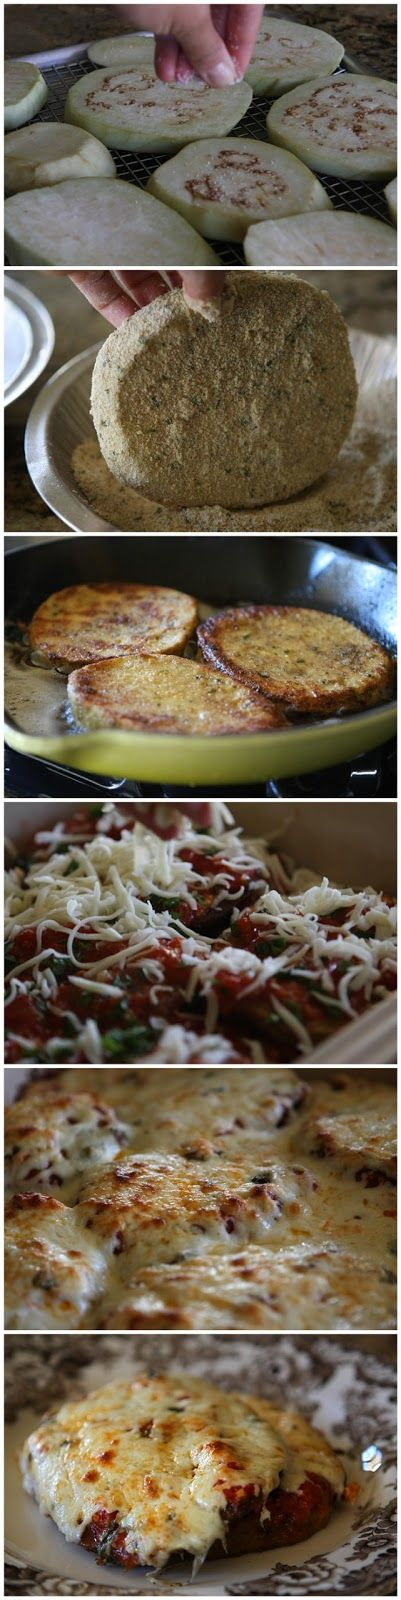 Eggplant Parmesan. Love this